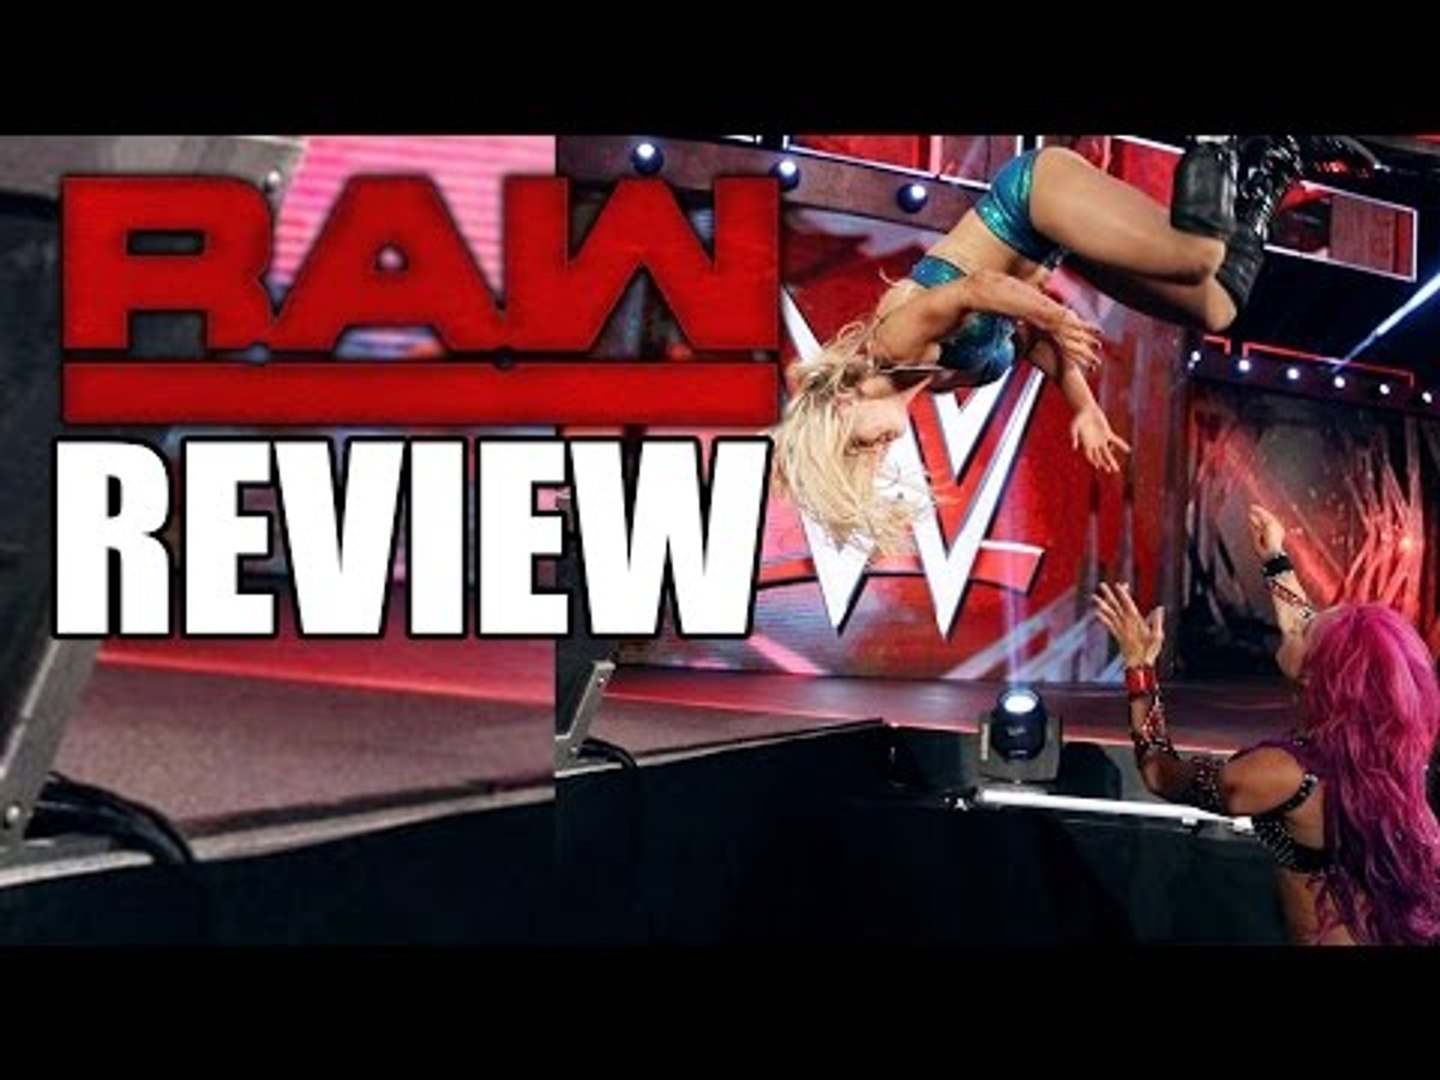 Brock Lesnar Confirmed For WWE Royal Rumble! Huge WWE Title Change On Raw! | WWE RAW 11/28/16 Review